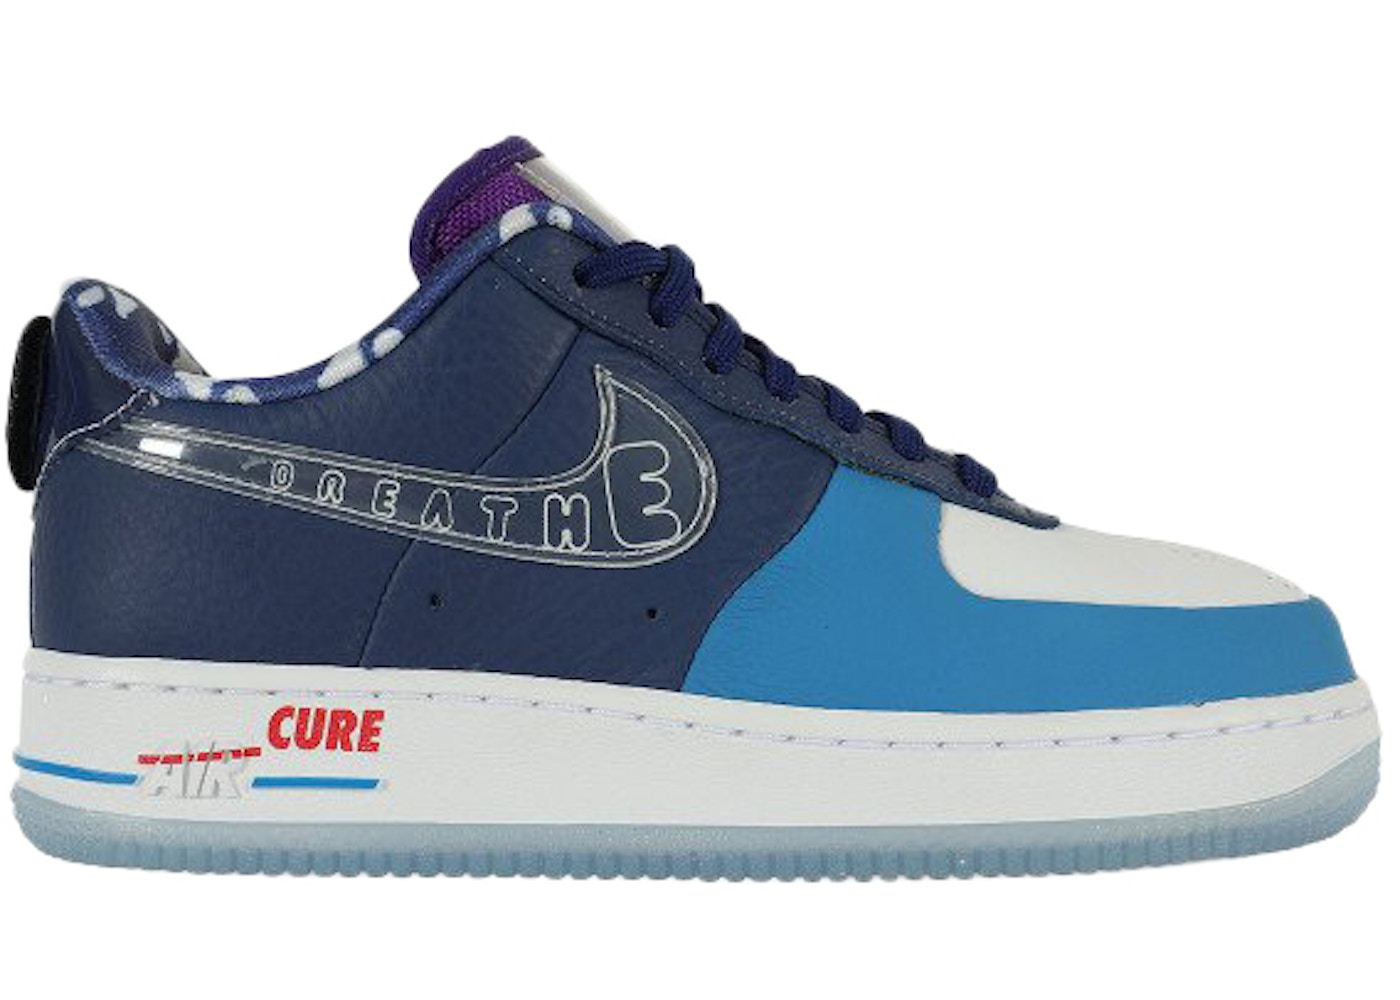 new product 63b2b a9162 Air Force 1 Low Doernbecher 2018 (W) - undefined